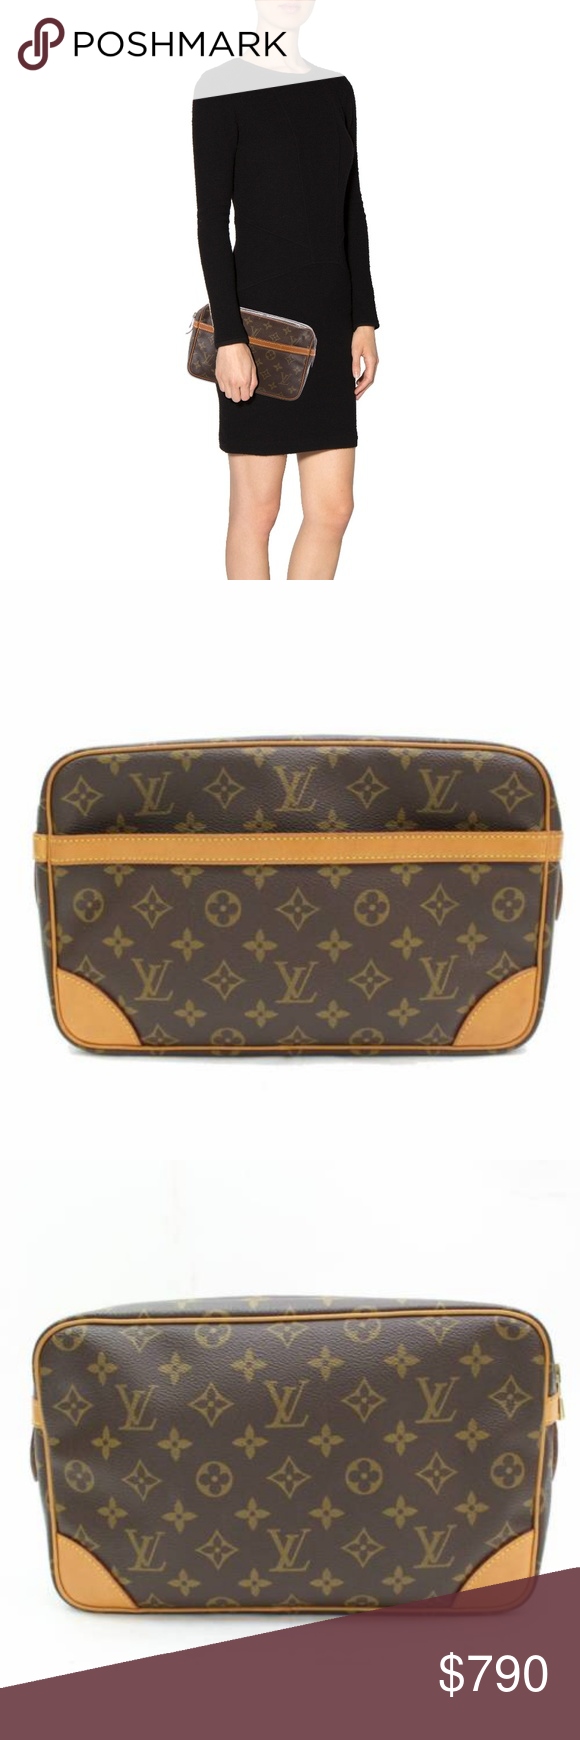 6ac6aac80 Auth Louis Vuitton Compiegne 28 Brown Monogram Authentic Louis Vuitton  Compiegne 28 clutch. Crafted in monogram coated canvas, this stylish clutch  comes in ...